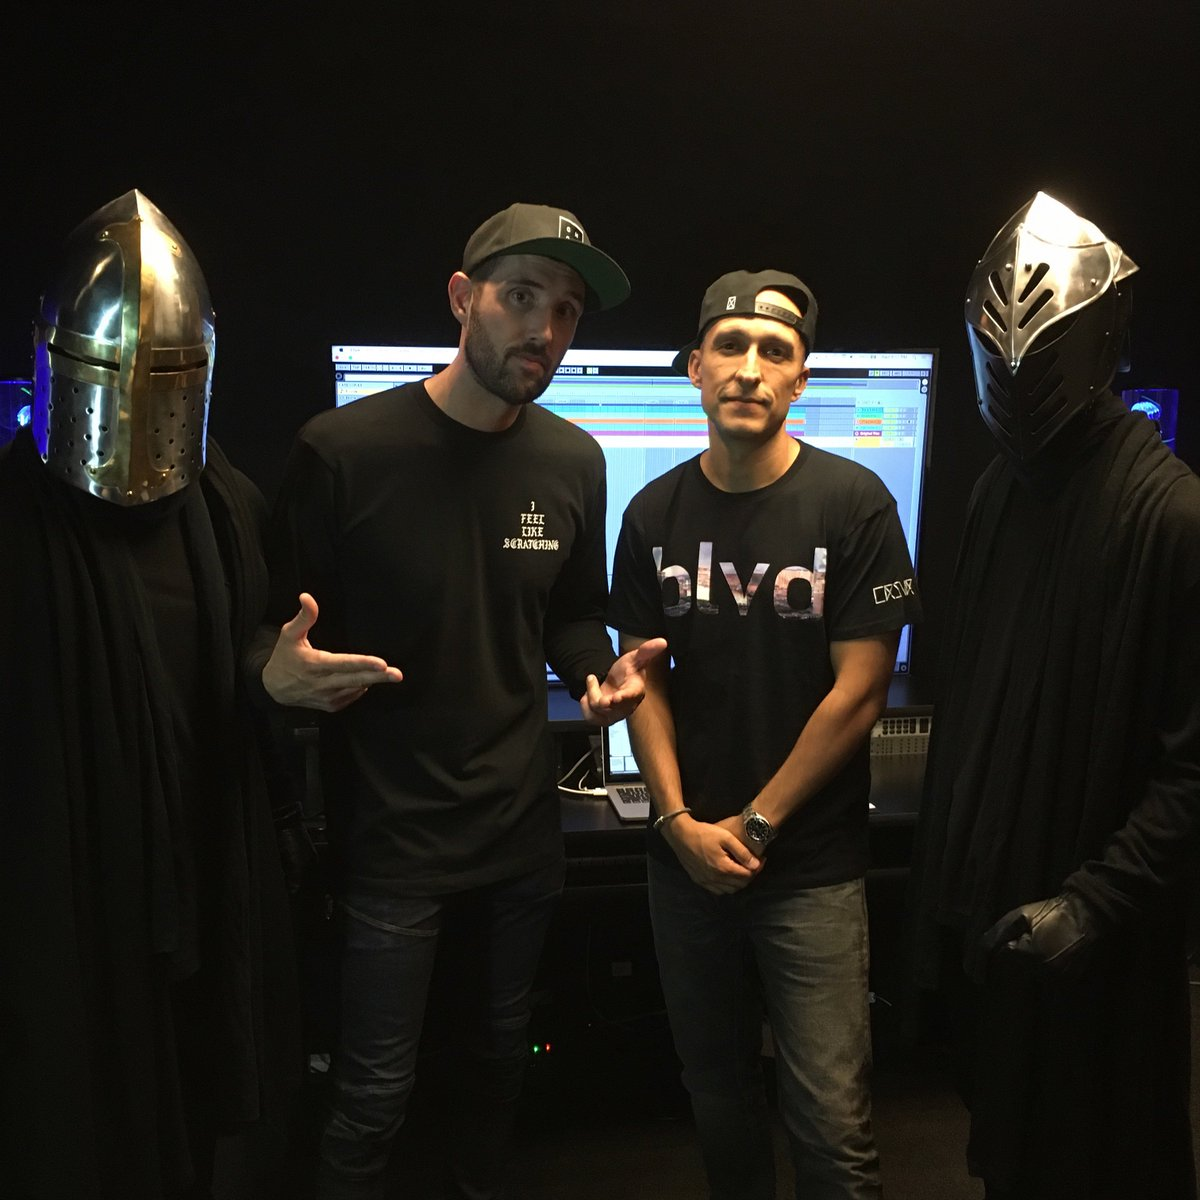 Finished up recording the latest episode of Behind The File with @djvice and the @Horsemendjs -- Coming soon to DMS! https://t.co/1imUCdZRcu